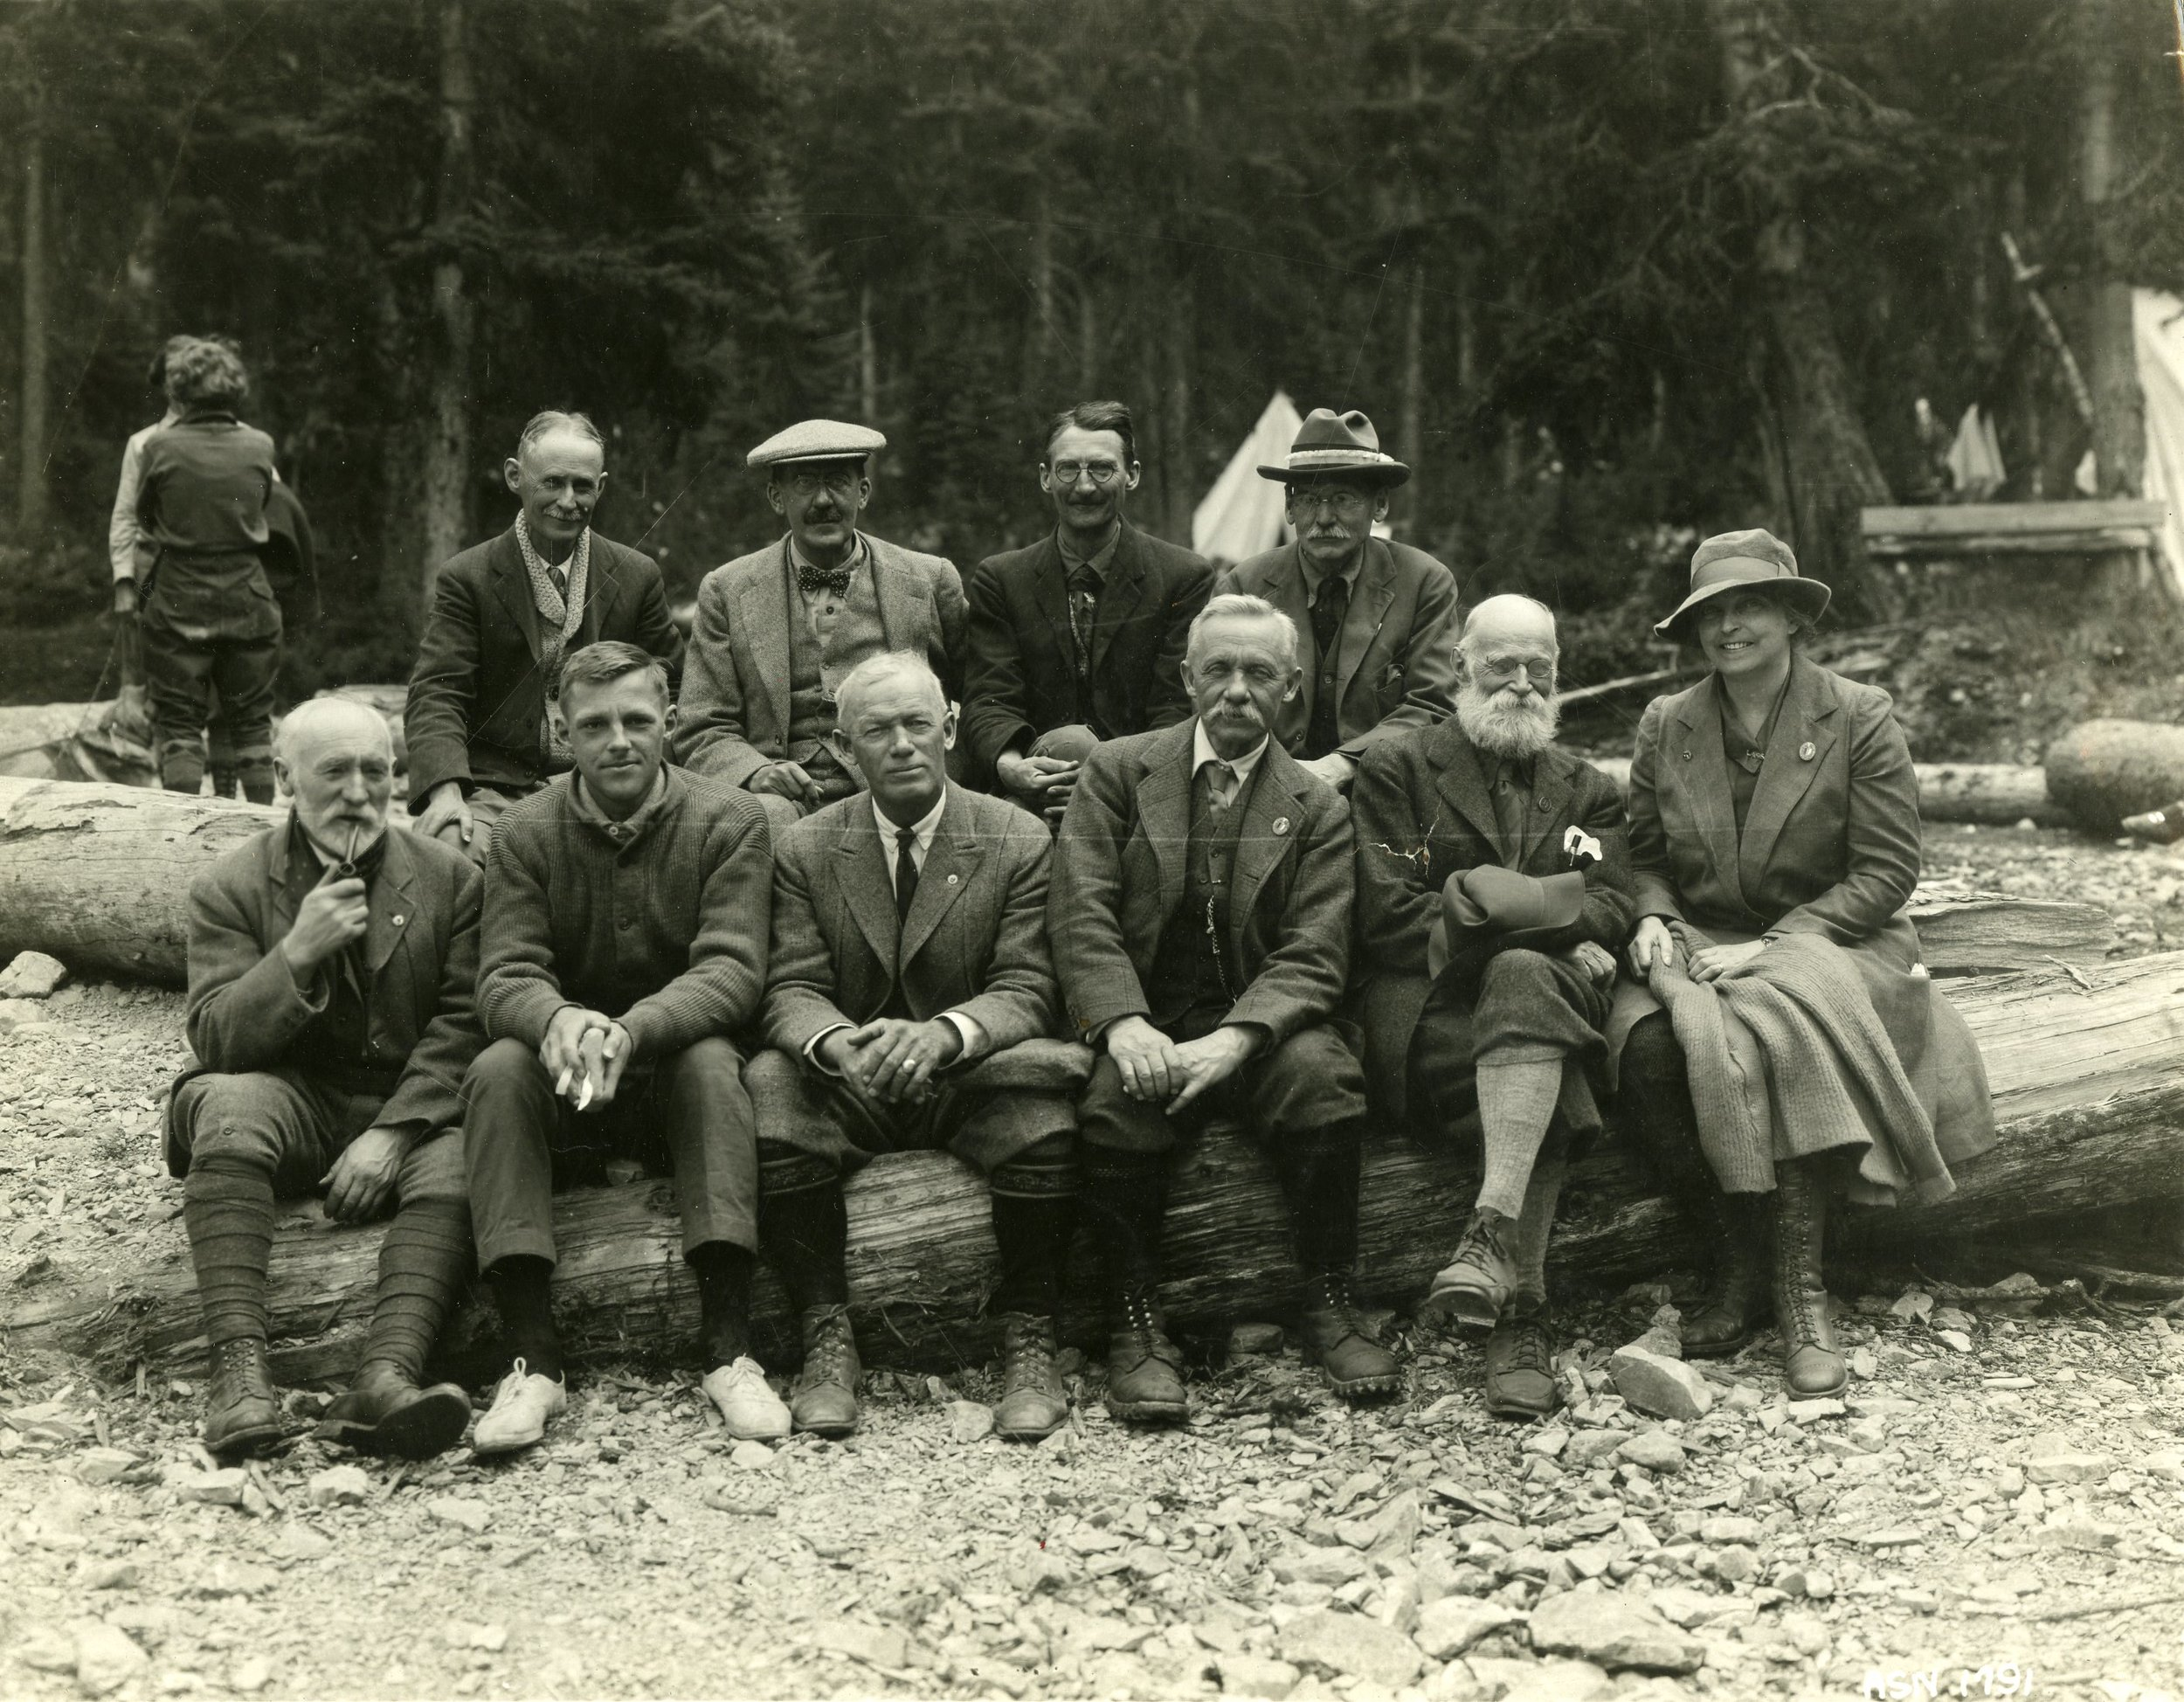 This photograph from 1925 is an example of the variety of mustaches that exist in nature.